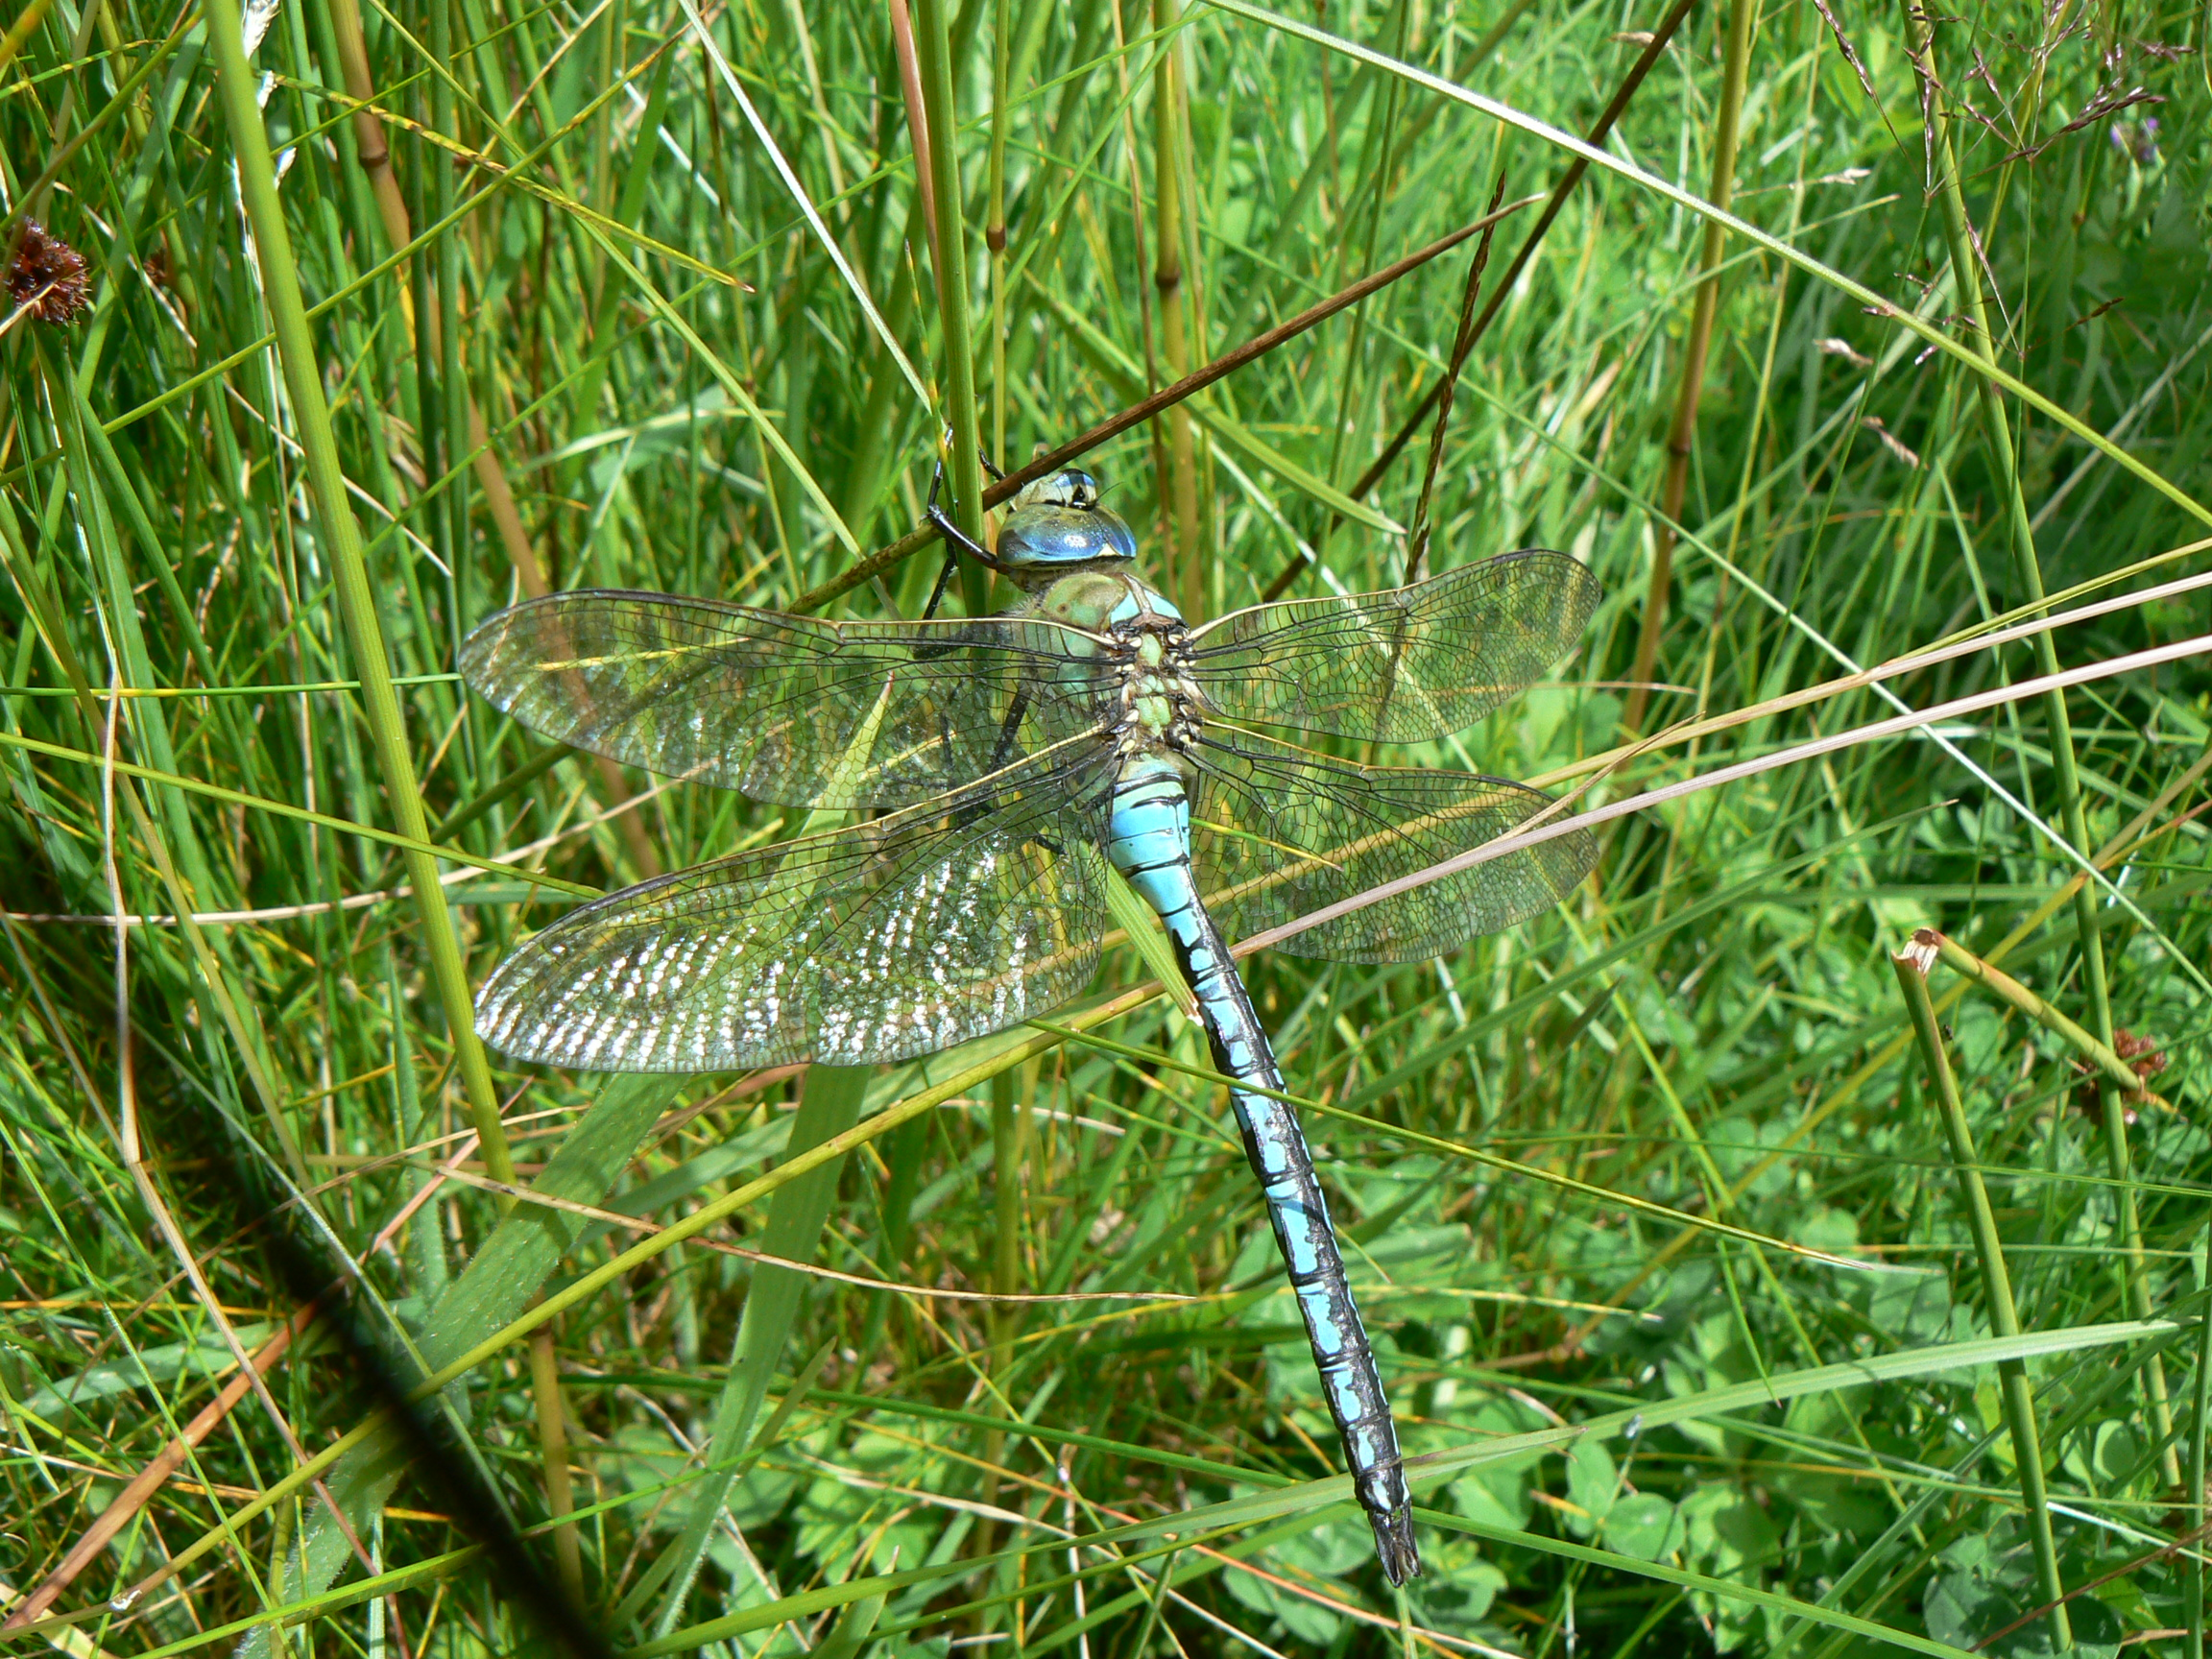 Another of the day's sidelines was this magnificent Emporer Dragonfly